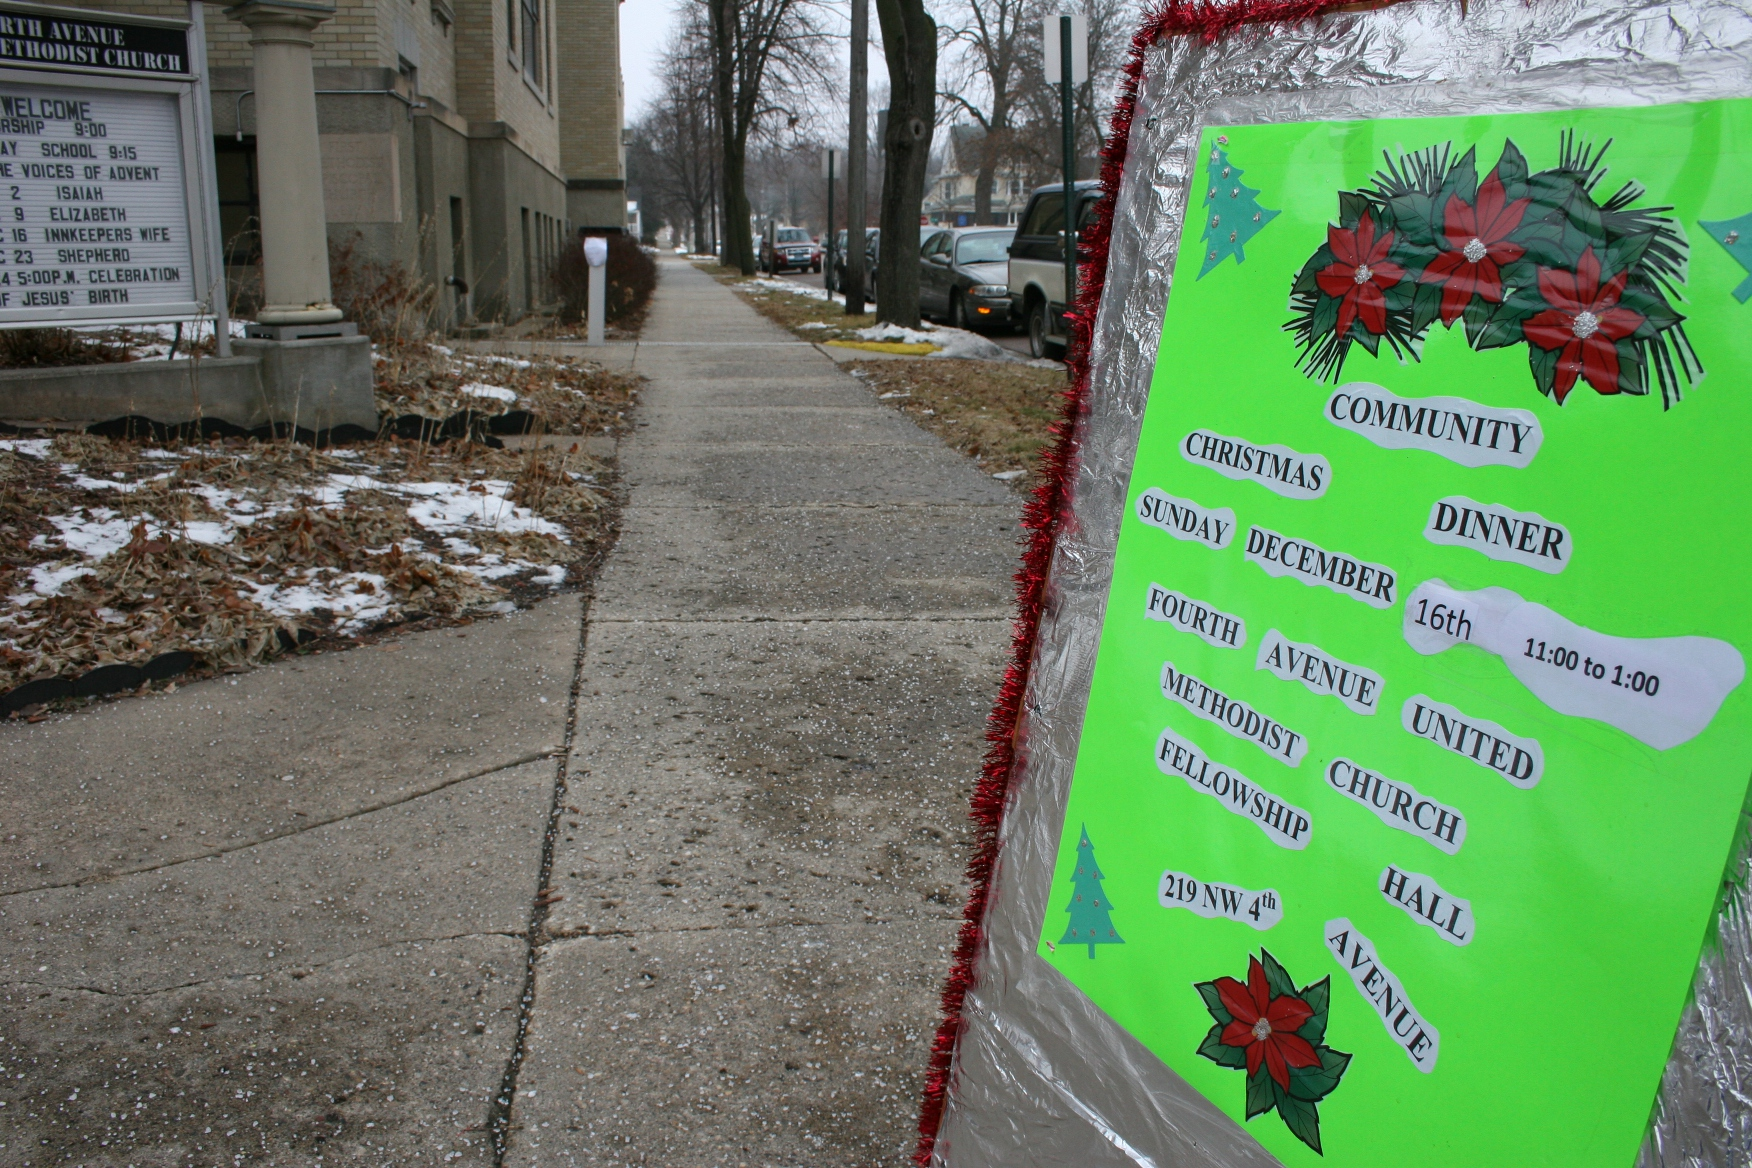 A street-side sign welcomes diners to the free Community Christmas dinner.